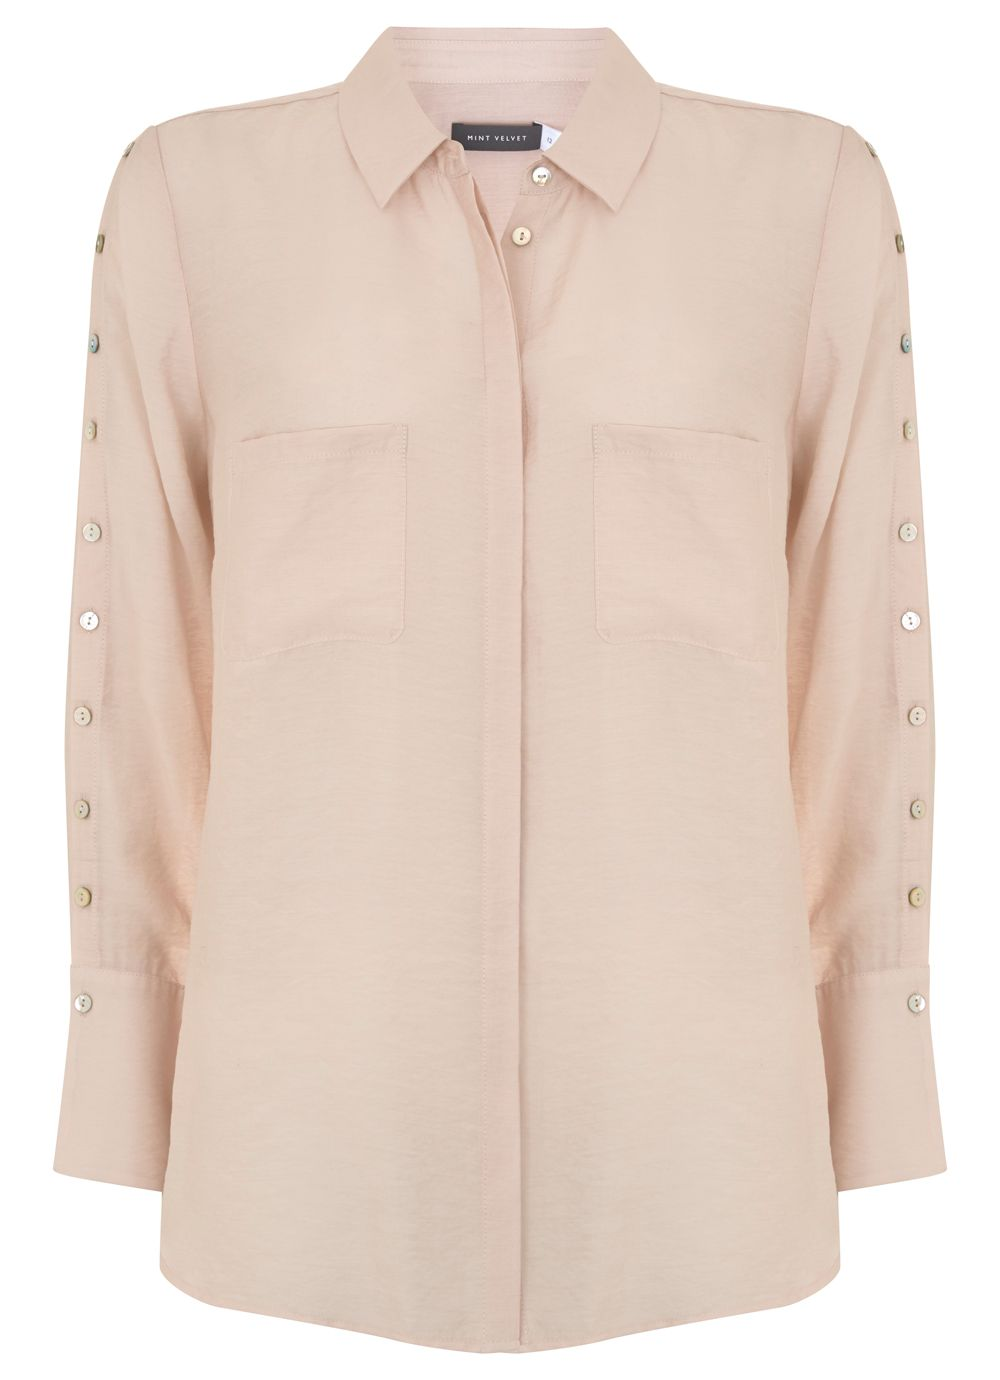 Mint Velvet Champagne Button Shirt, Neutral